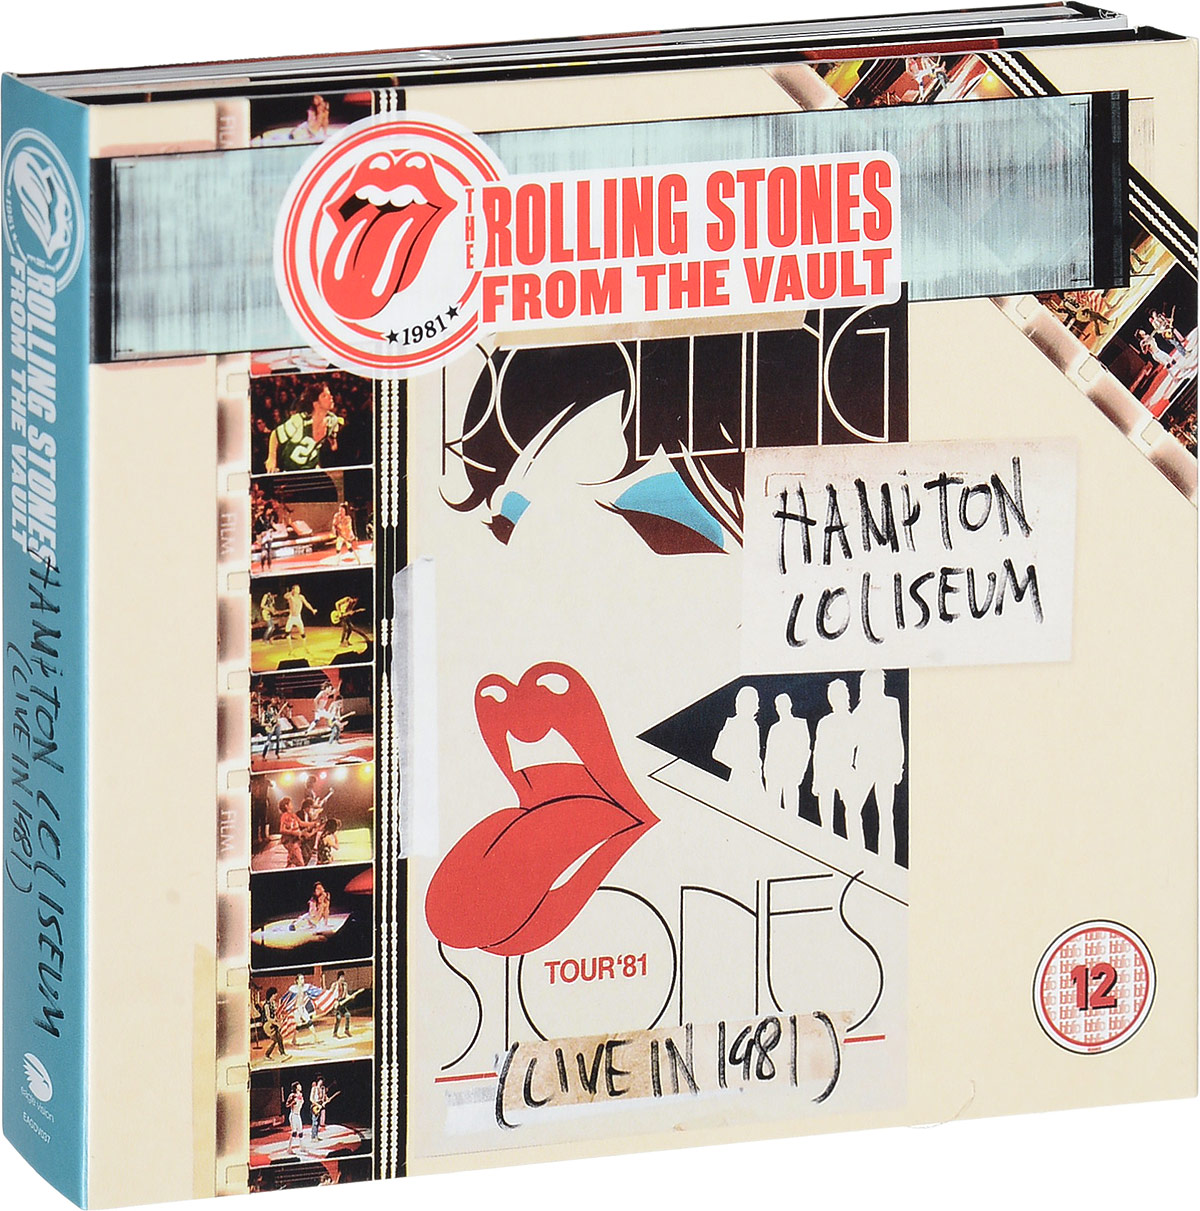 Rolling Stones: From The Vault: Hamiton Coliseum: Live In 1981 (DVD + 2 CD) ikon 2016 ikoncert showtime tour in seoul live release date 2016 05 04 kpop